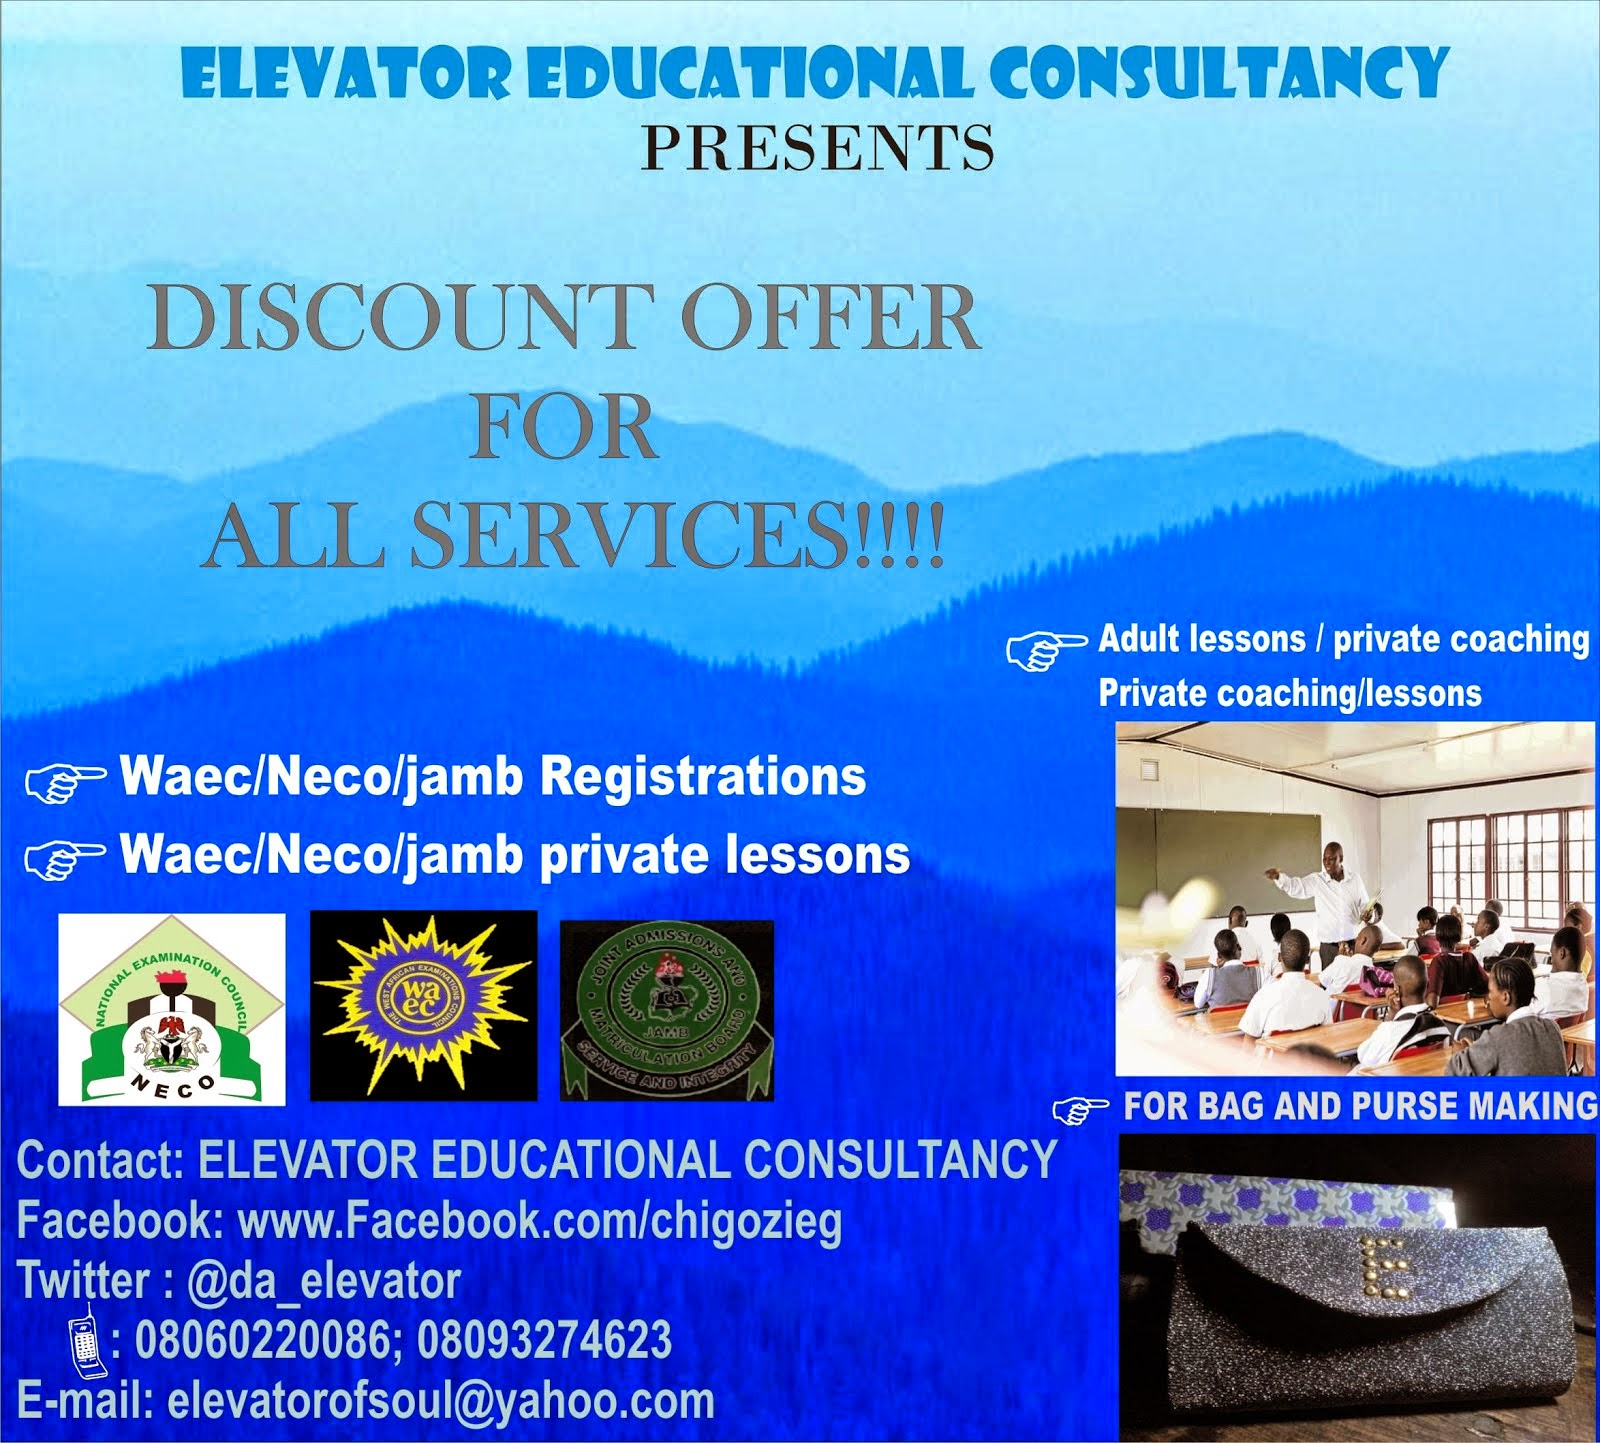 ELEVATOR EDUCATIONAL CONSULTANCY